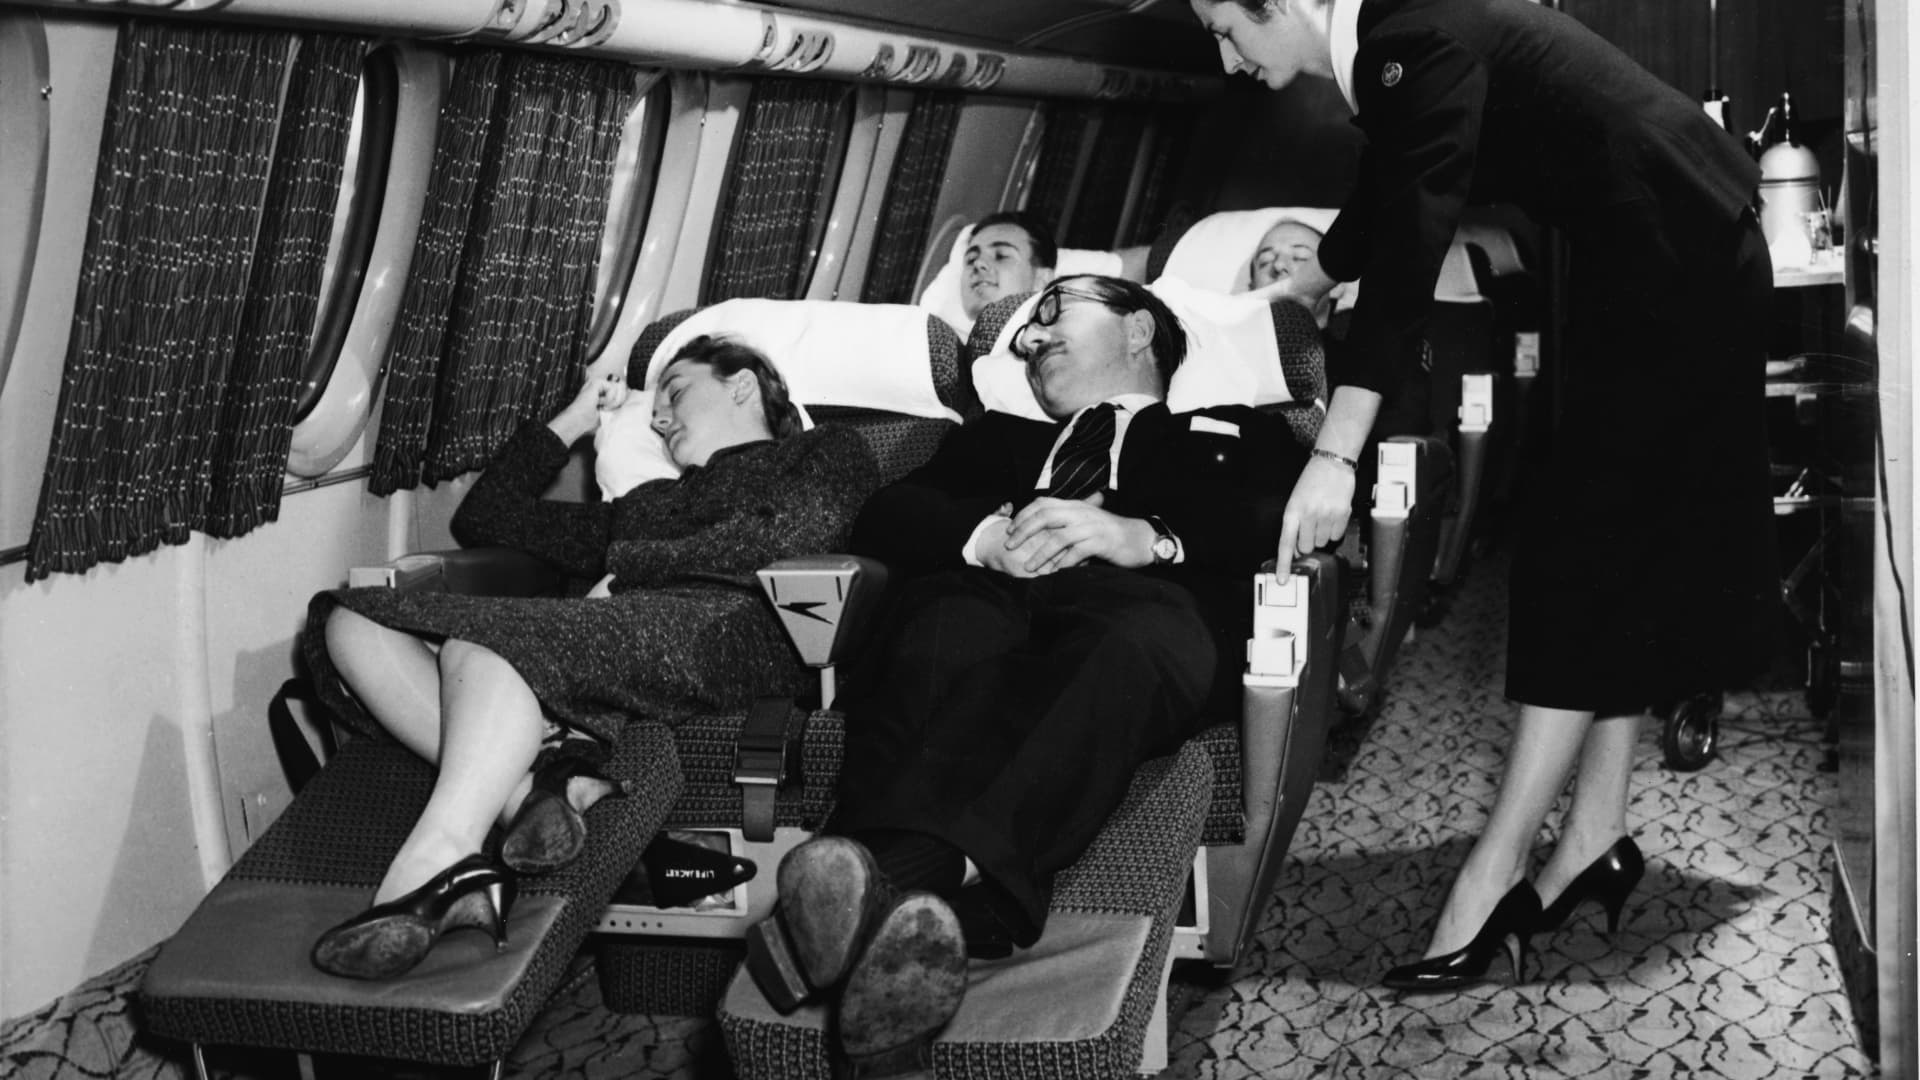 A first-class compartment of a commercial passenger plane in the 1950s.